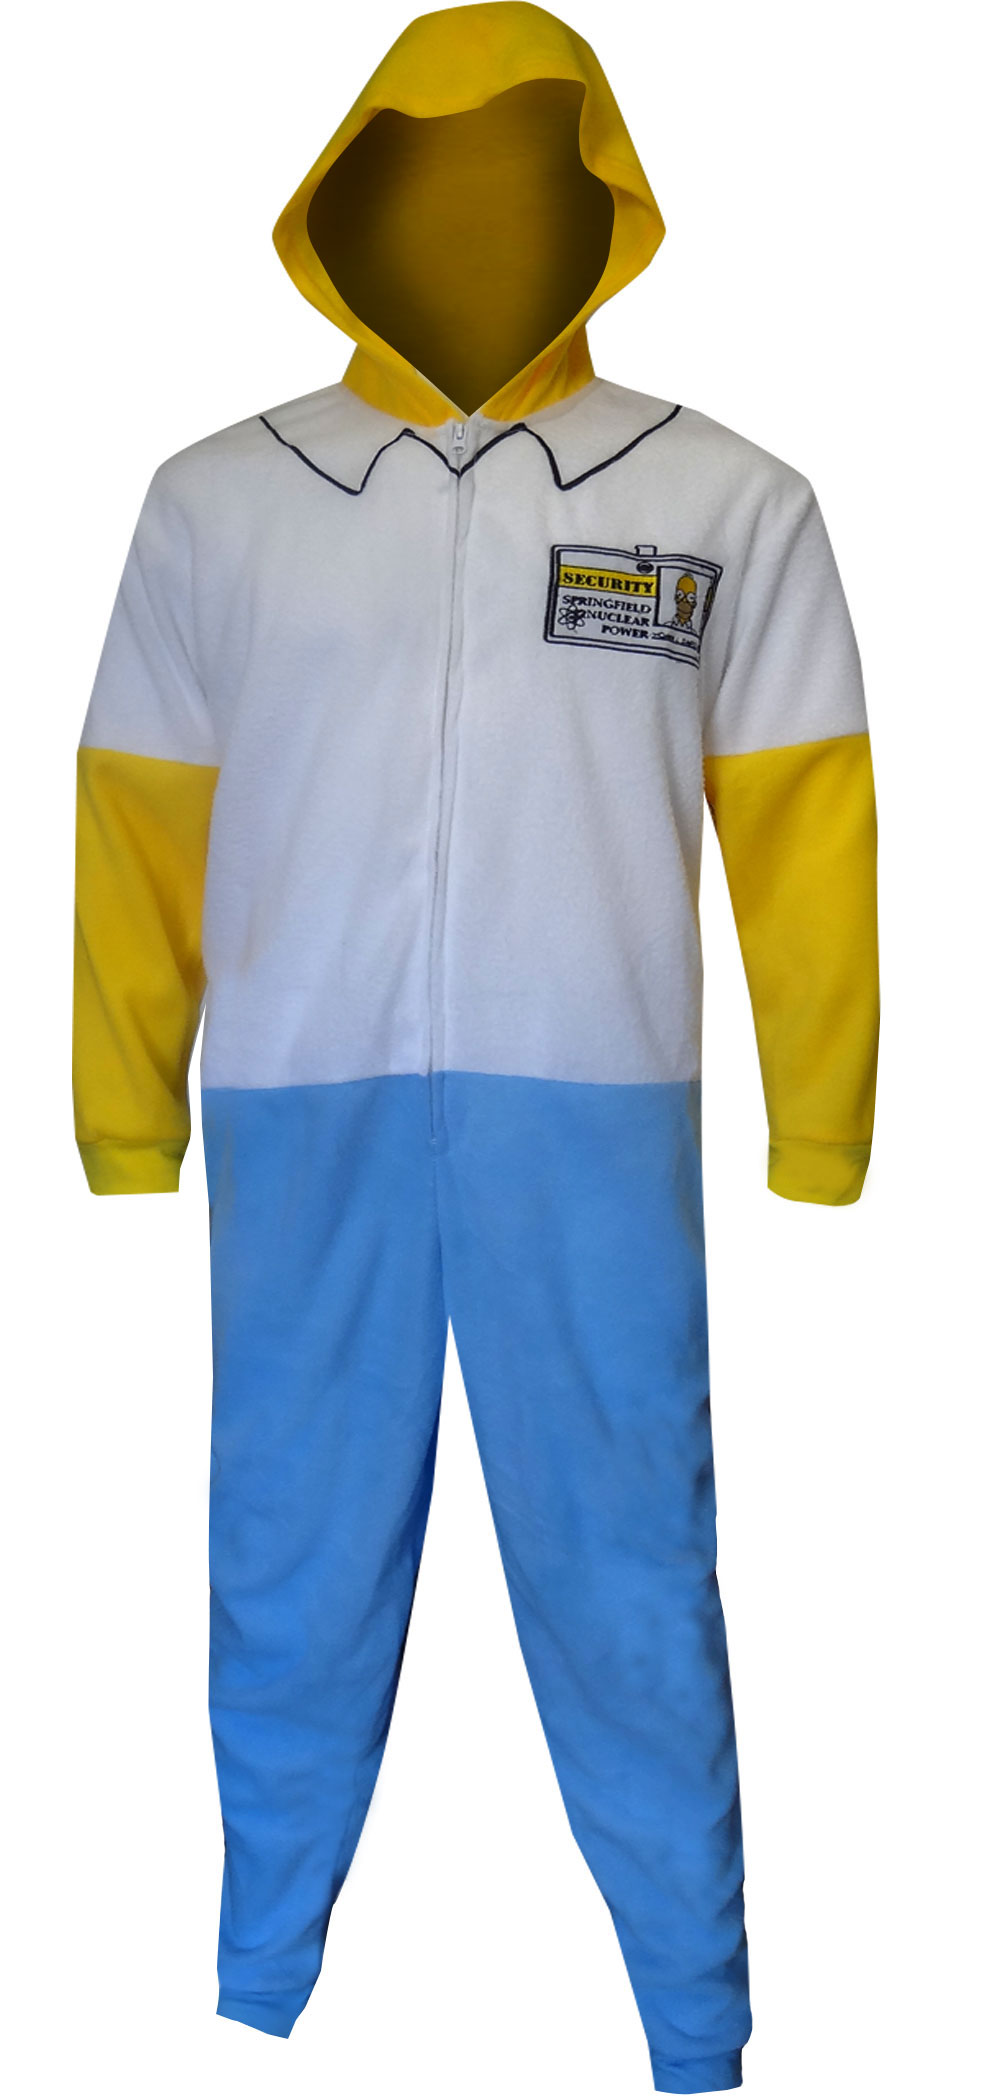 Image of Homer Simpson Fleece One Piece Union Suit for men